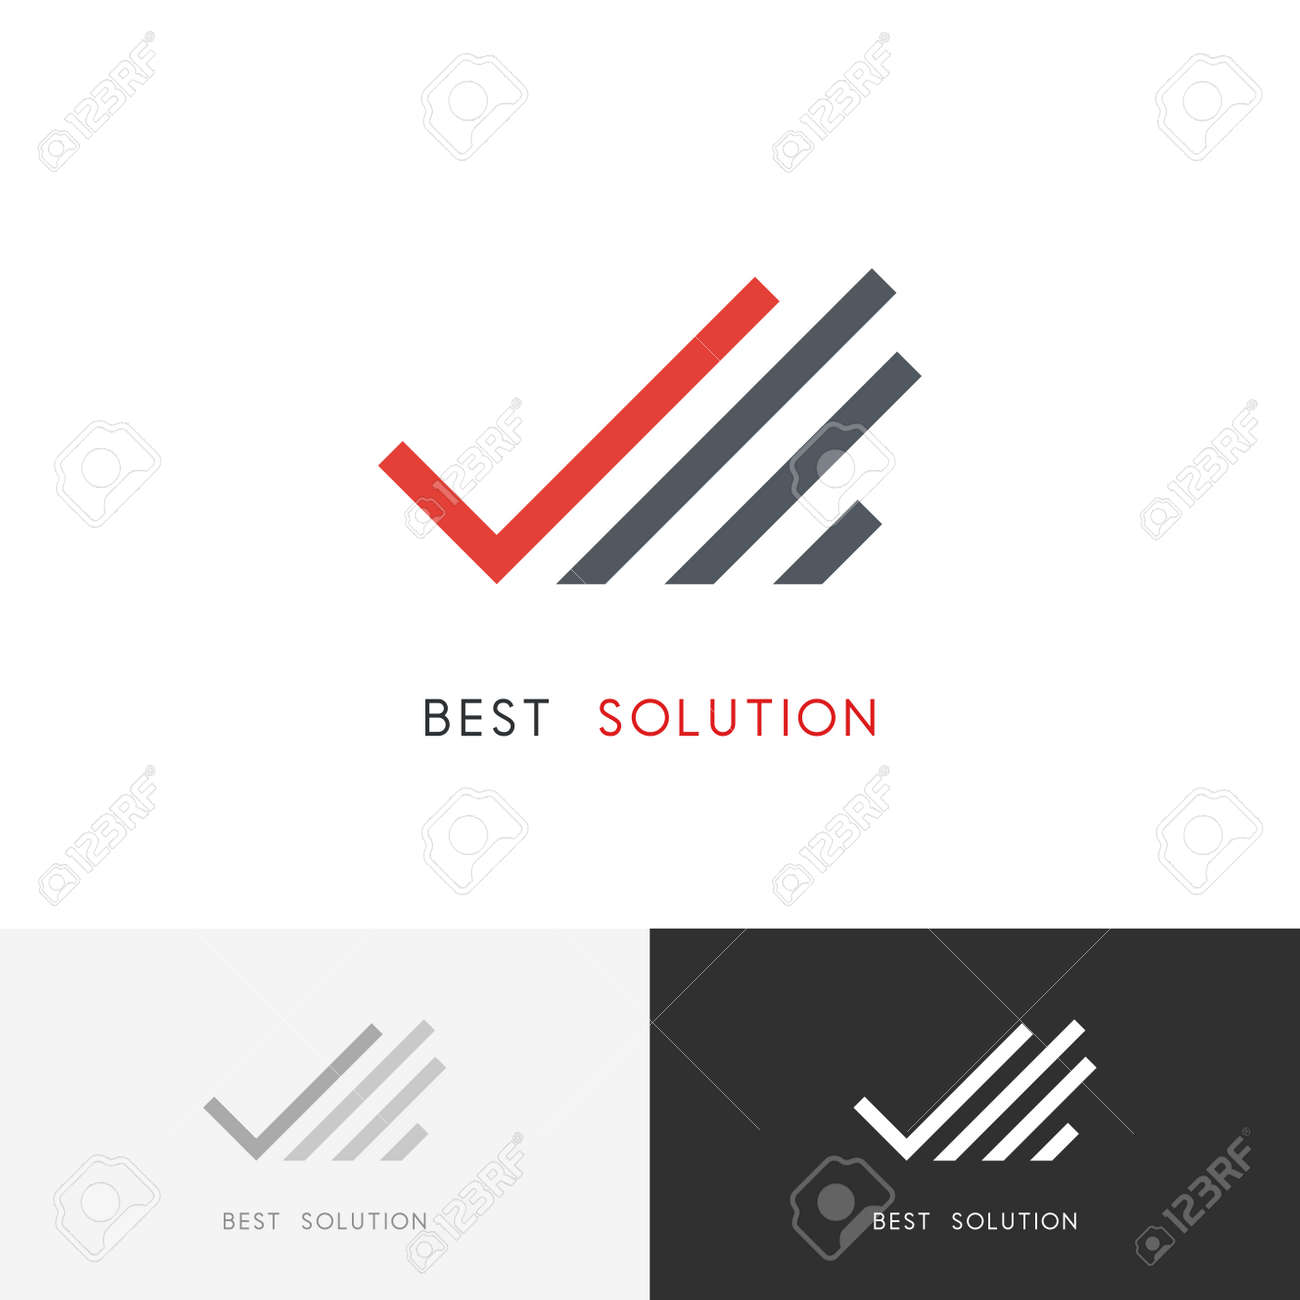 Best Solution Logo Hand With Check Mark Or Tick Symbol